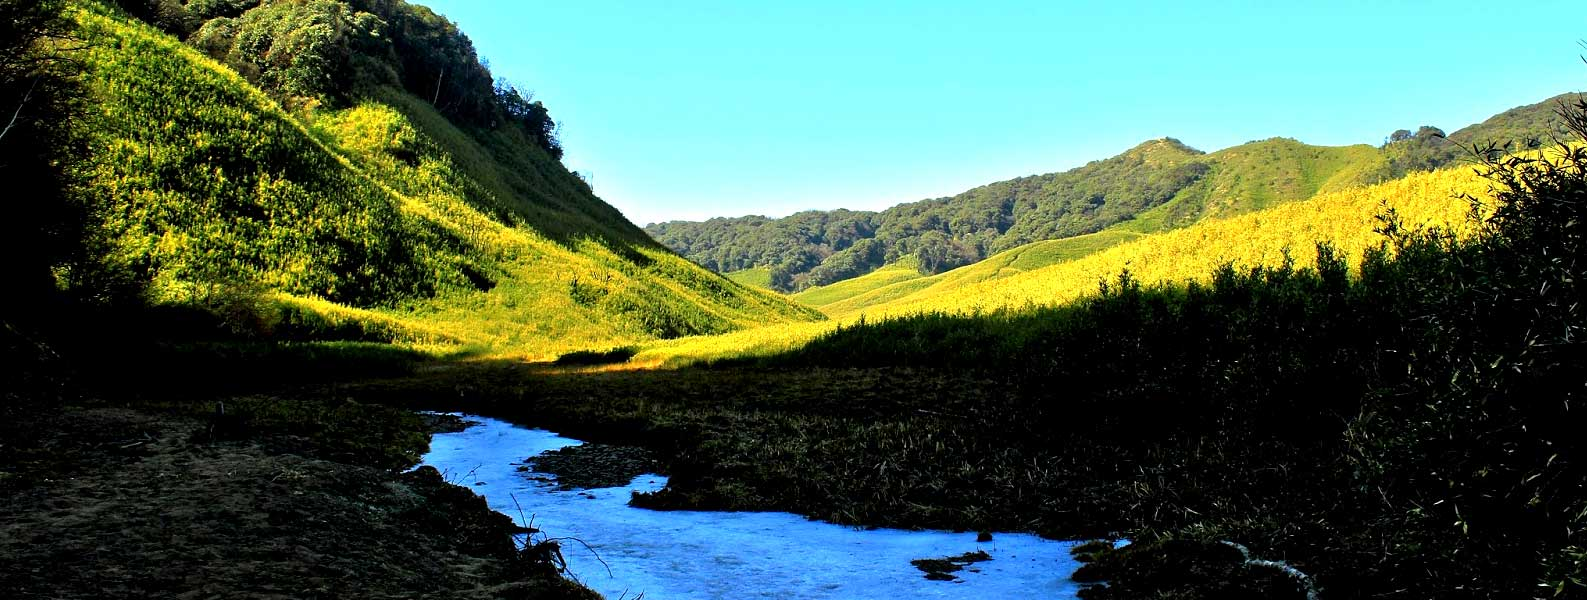 A Glimpse of Nagaland The Land of Headhunter